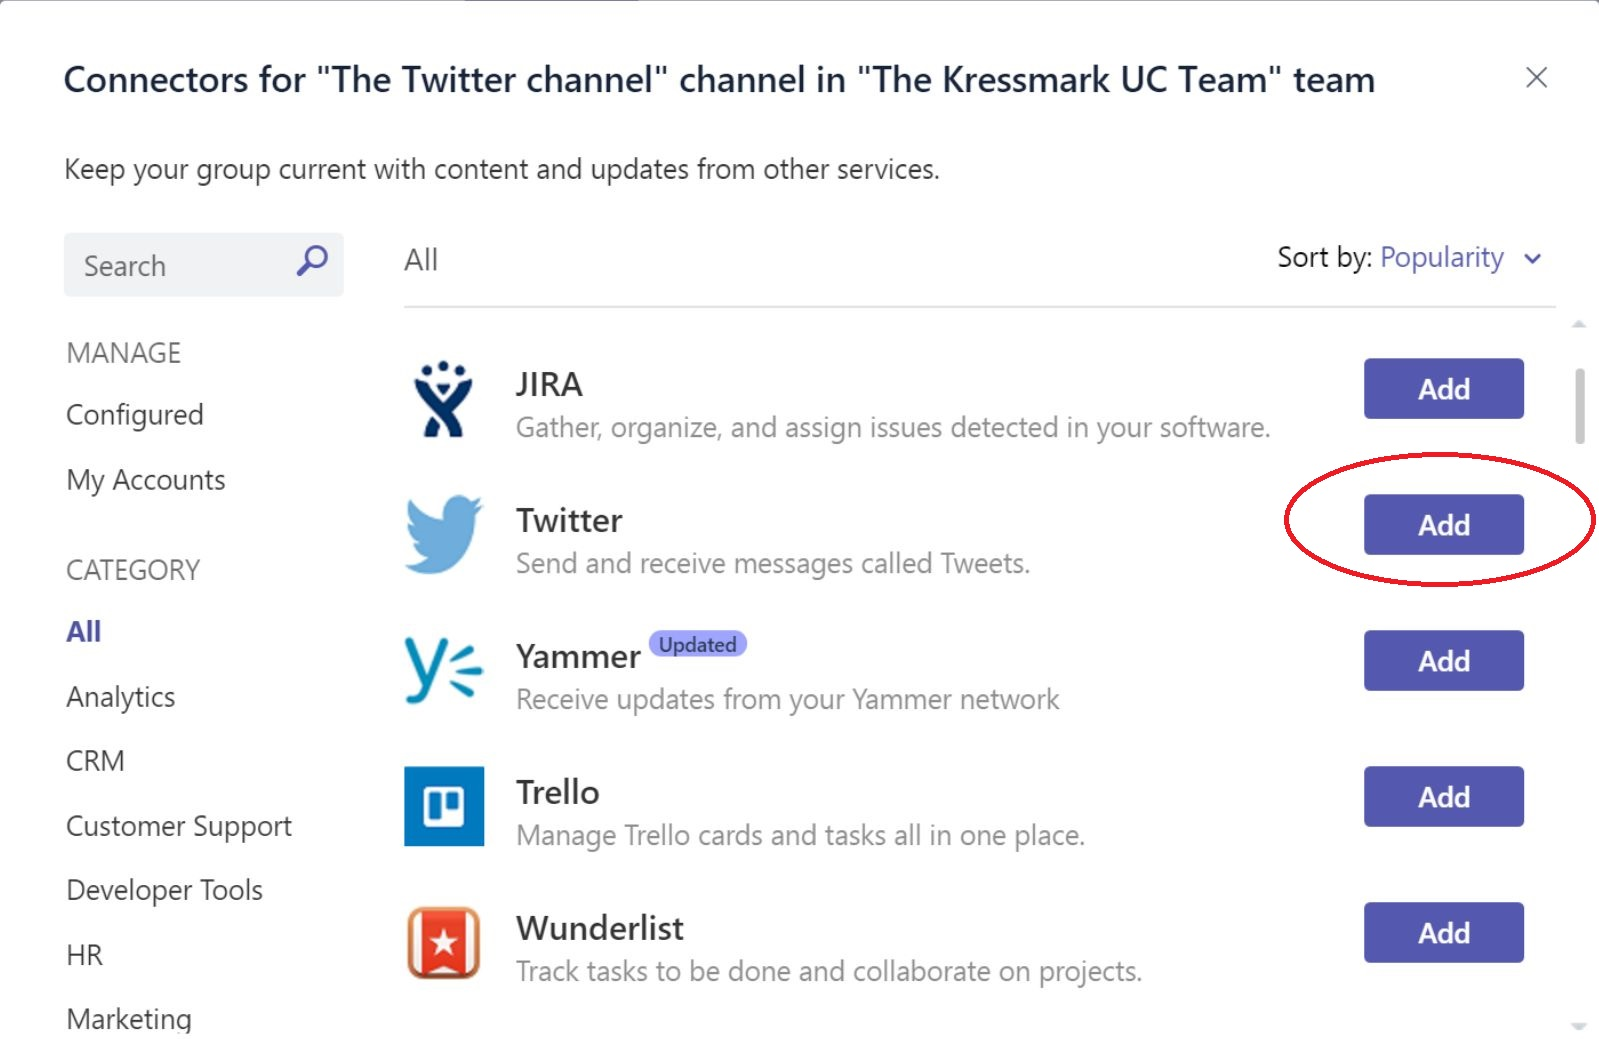 Kressmark Unified Communications: How to add twitter to your